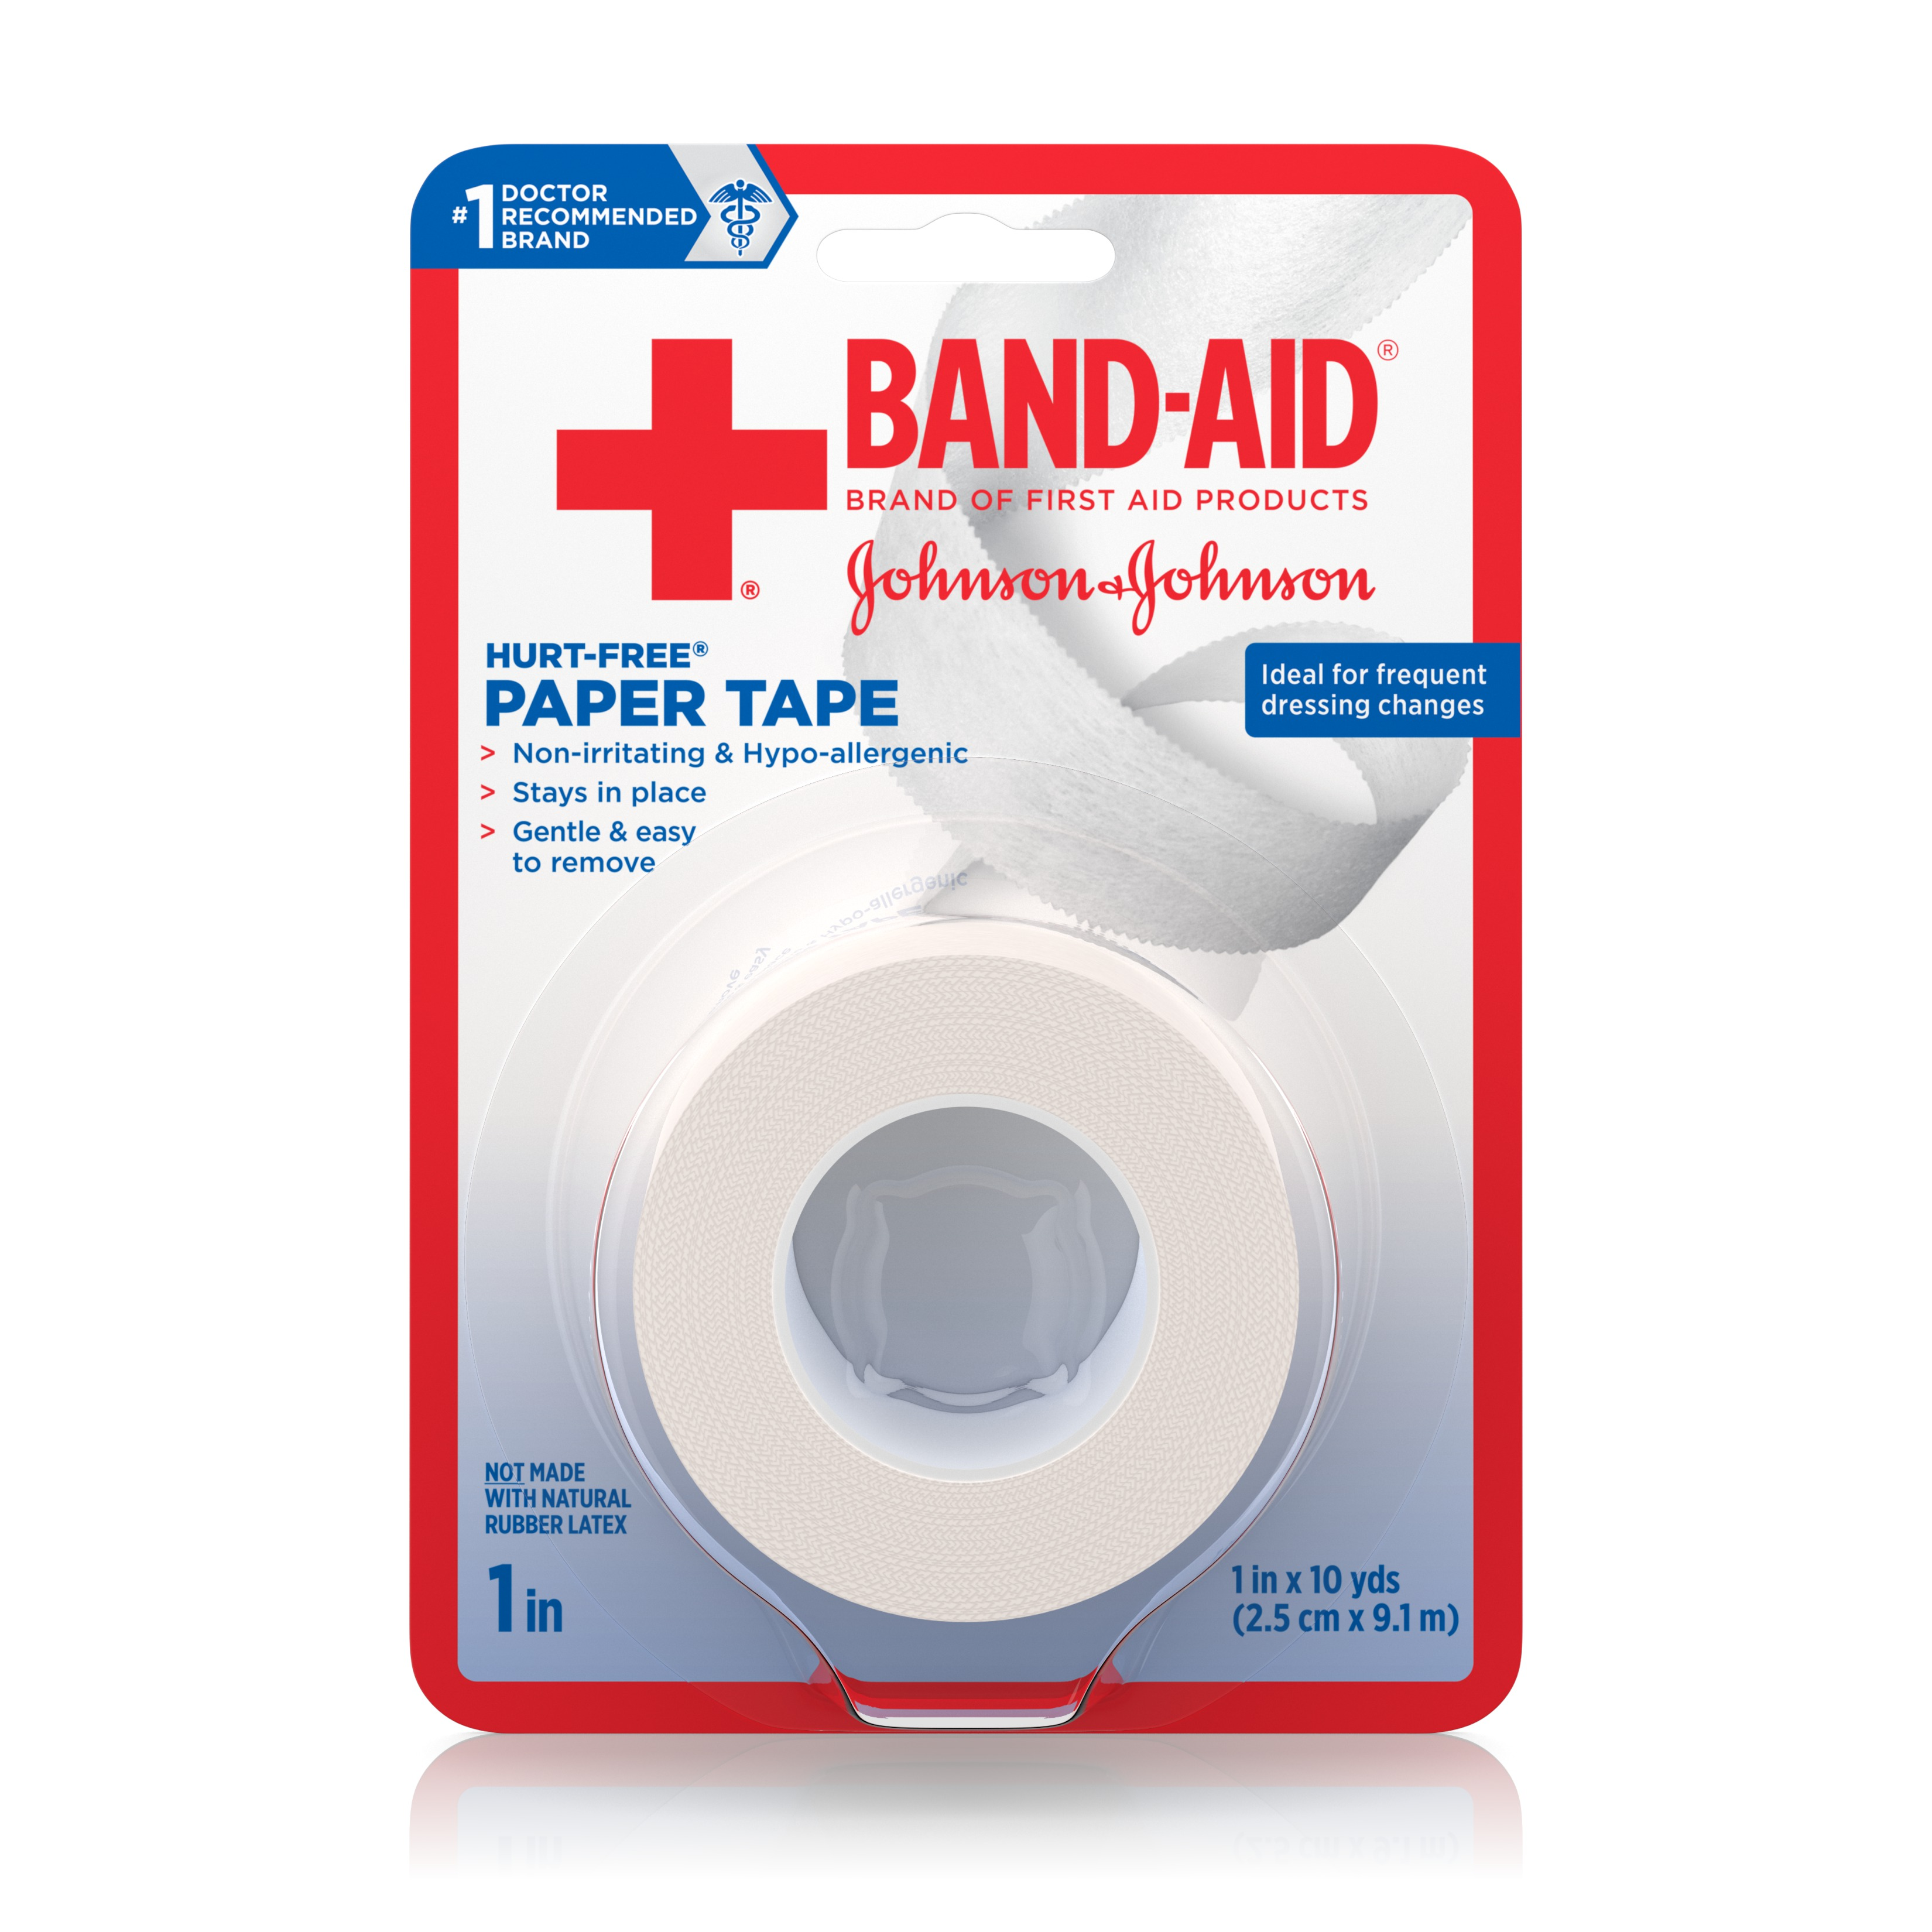 Band-Aid Brand of First Aid Products Hurt-Free Paper Tape to Secure Bandages, 1 Inch by 10 Yards